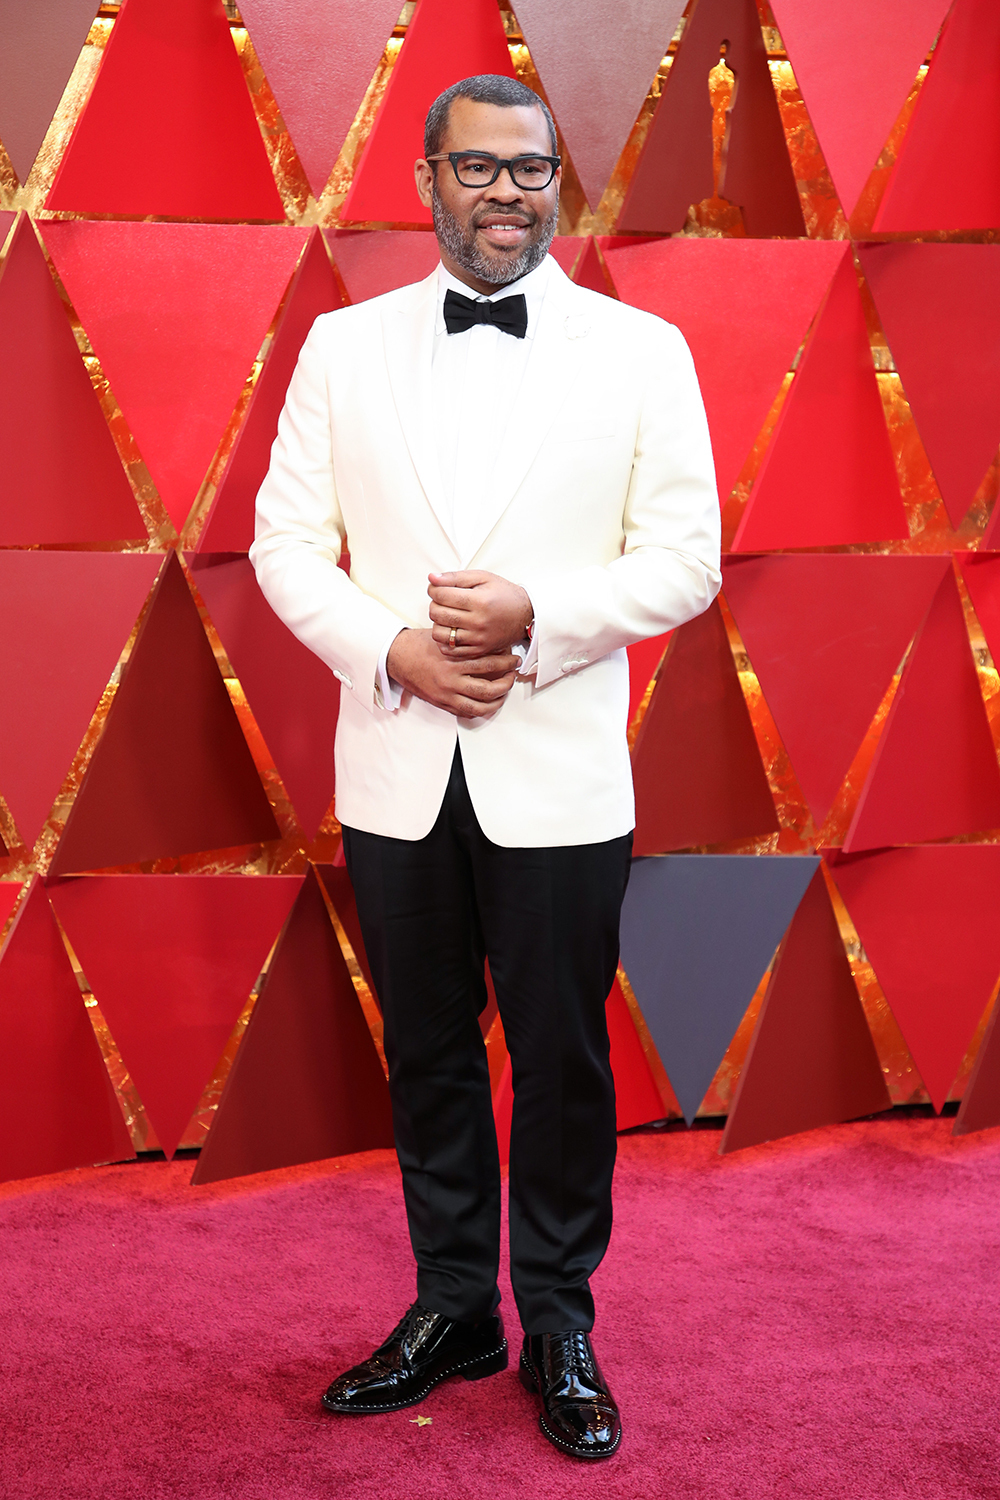 jordan-peele-oscars-red-carpet.jpg